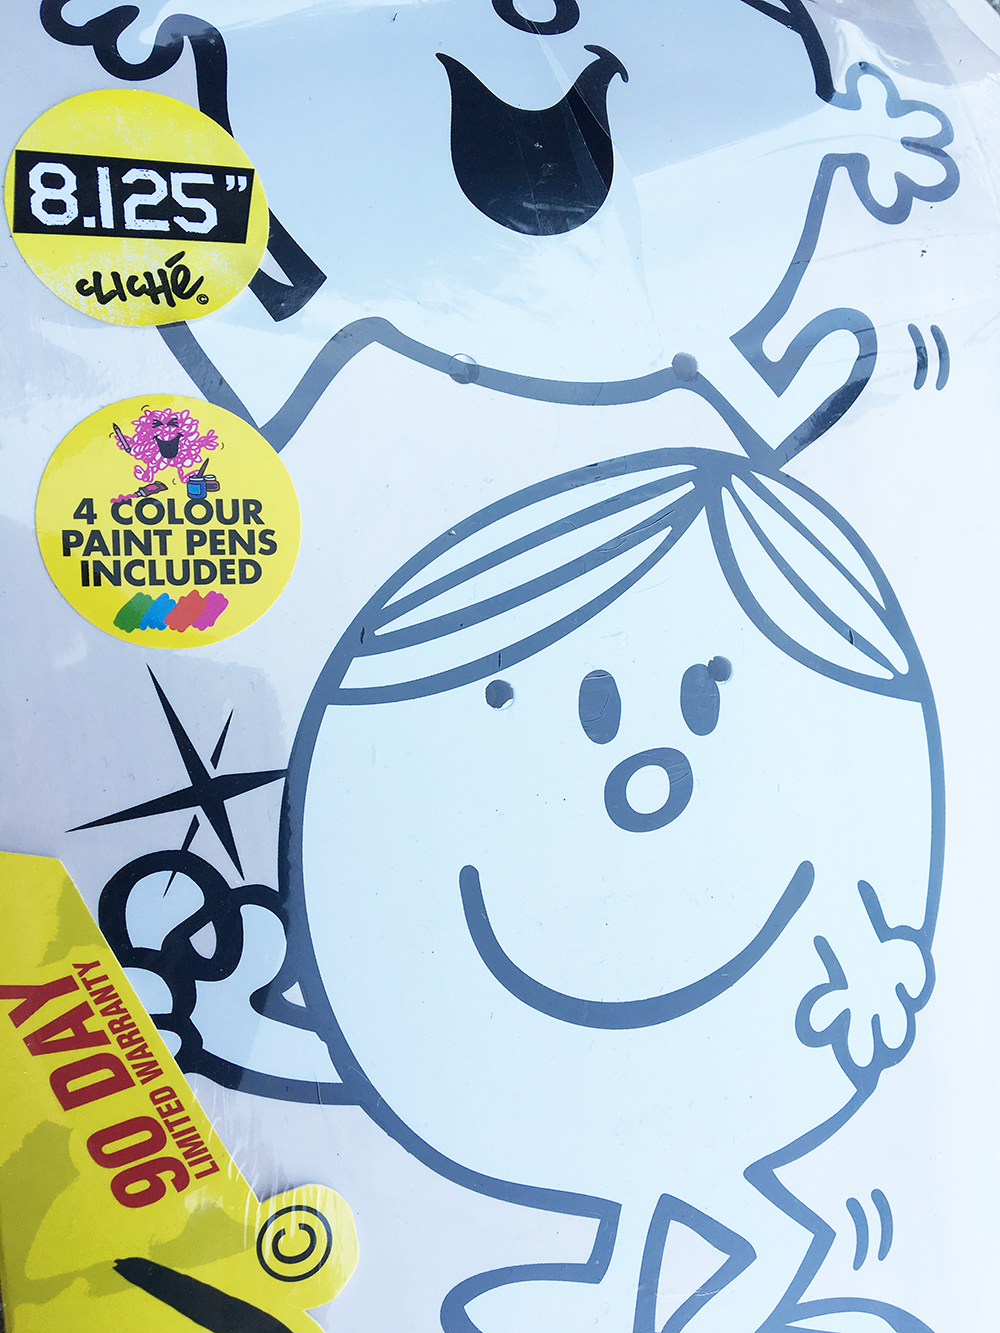 Cliché Skateboards x Mr. Men Paint Pen Seires Detail8